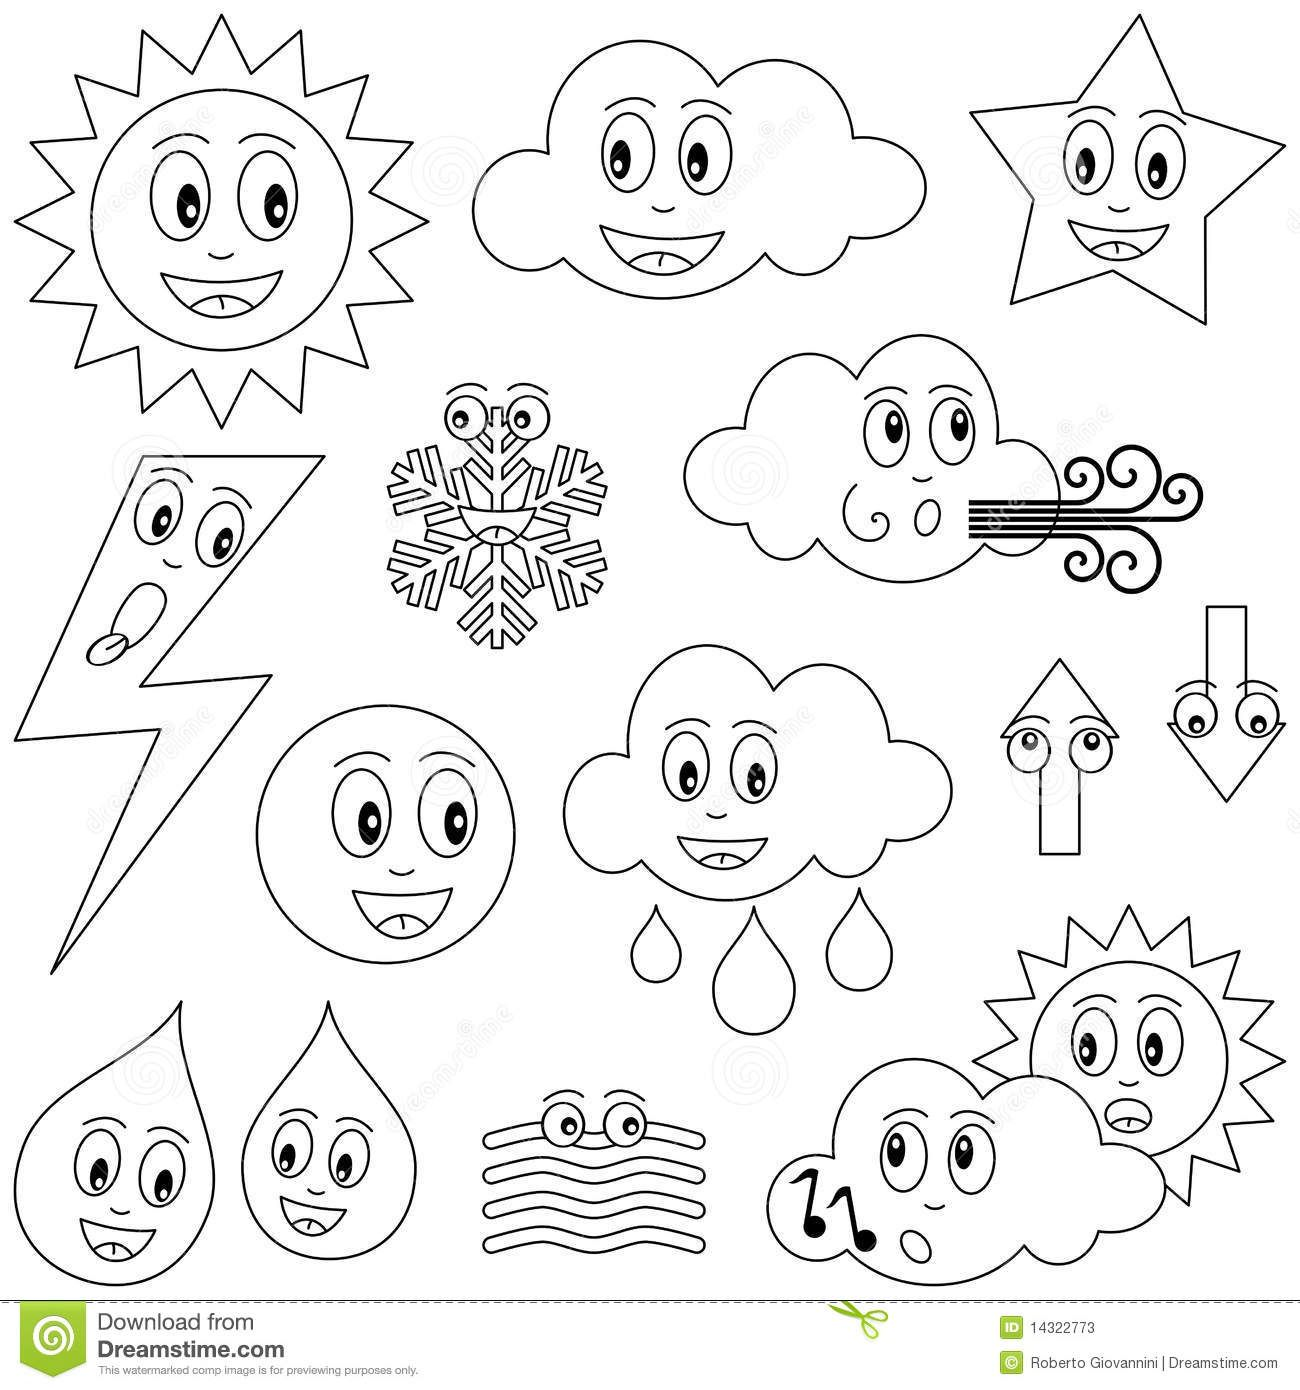 Water Drop Coloring Coloring Pages Preschool Coloring Pages